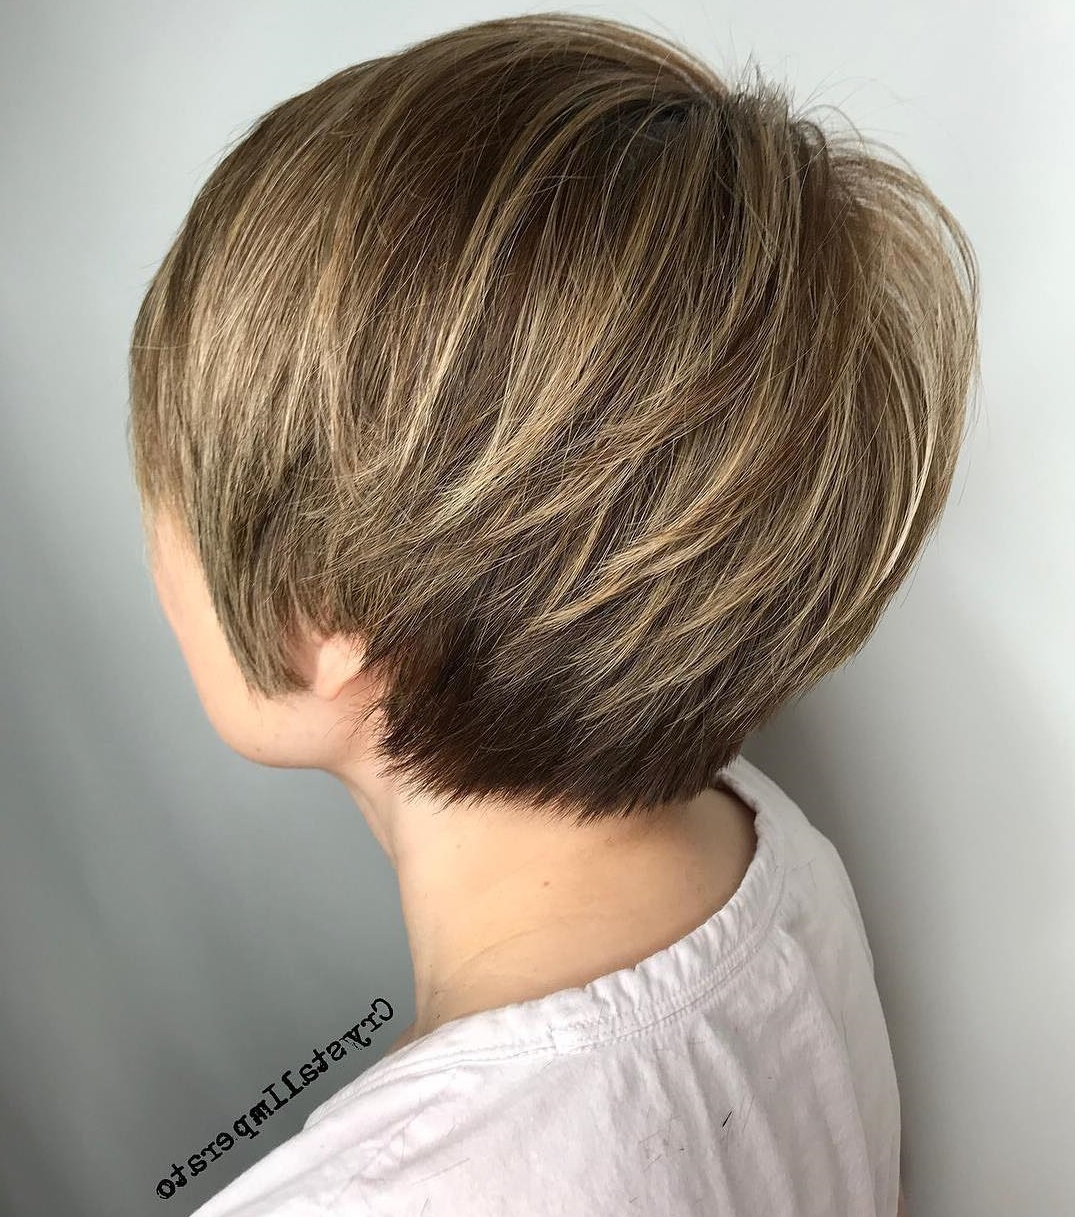 50 Hottest Pixie Cut Hairstyles In 2019 With Regard To Long Curly Pixie Haircuts With Subtle Highlights (View 3 of 20)